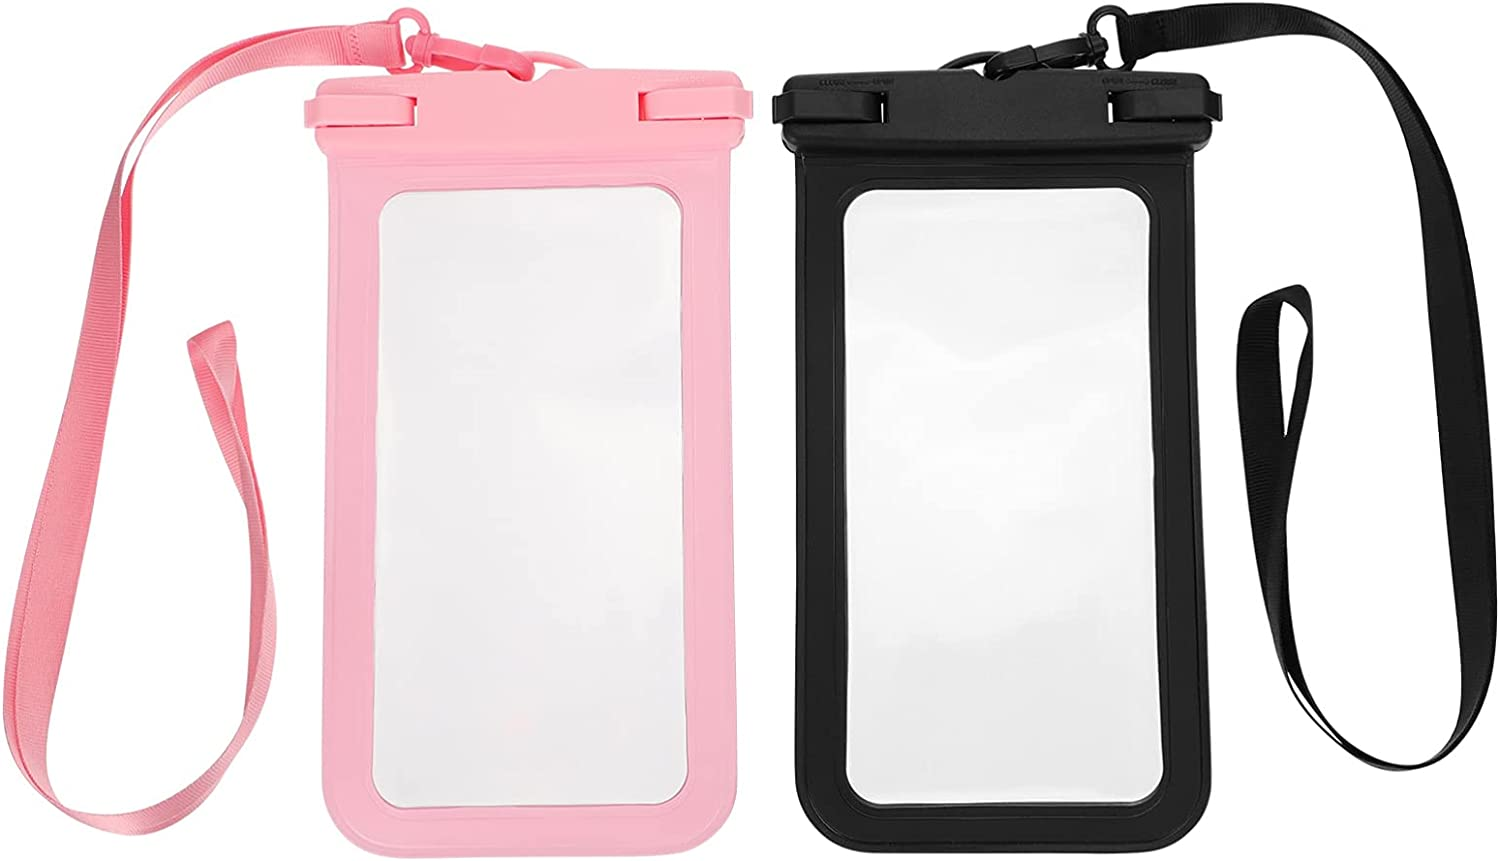 BESPORTBLE 2Pcs Waterproof Phone Pouch Floatable Universal Cellphone Dry Bag Touch Screen Beach Underwater Phone Case with Lanyard for All Phones